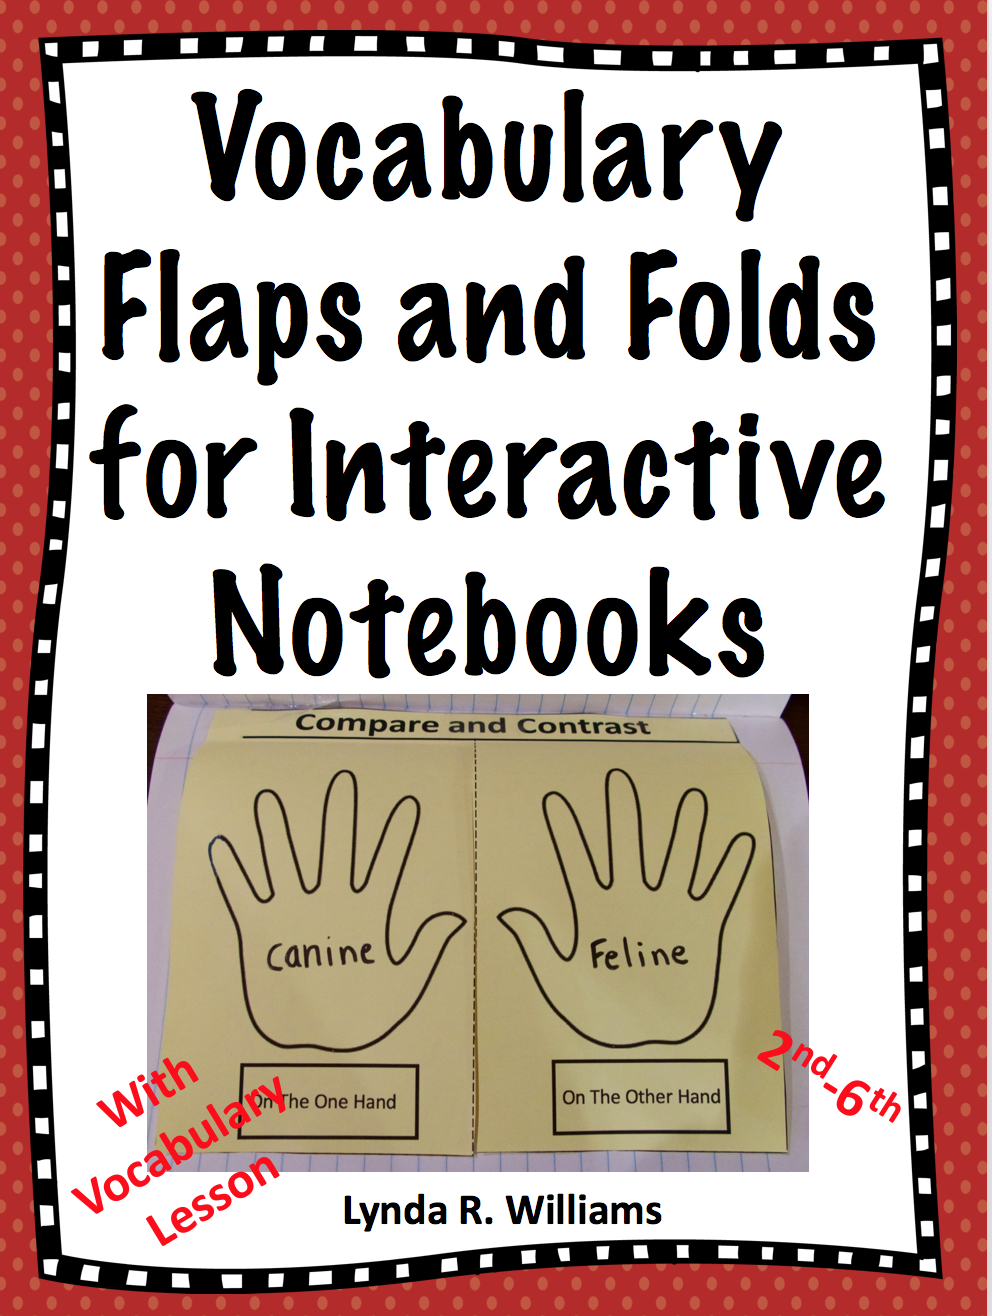 Teaching science with lynda vocabulary for interactive notebooks these great foldables are available in this product editable flaps and folds for interactive notebooks maxwellsz